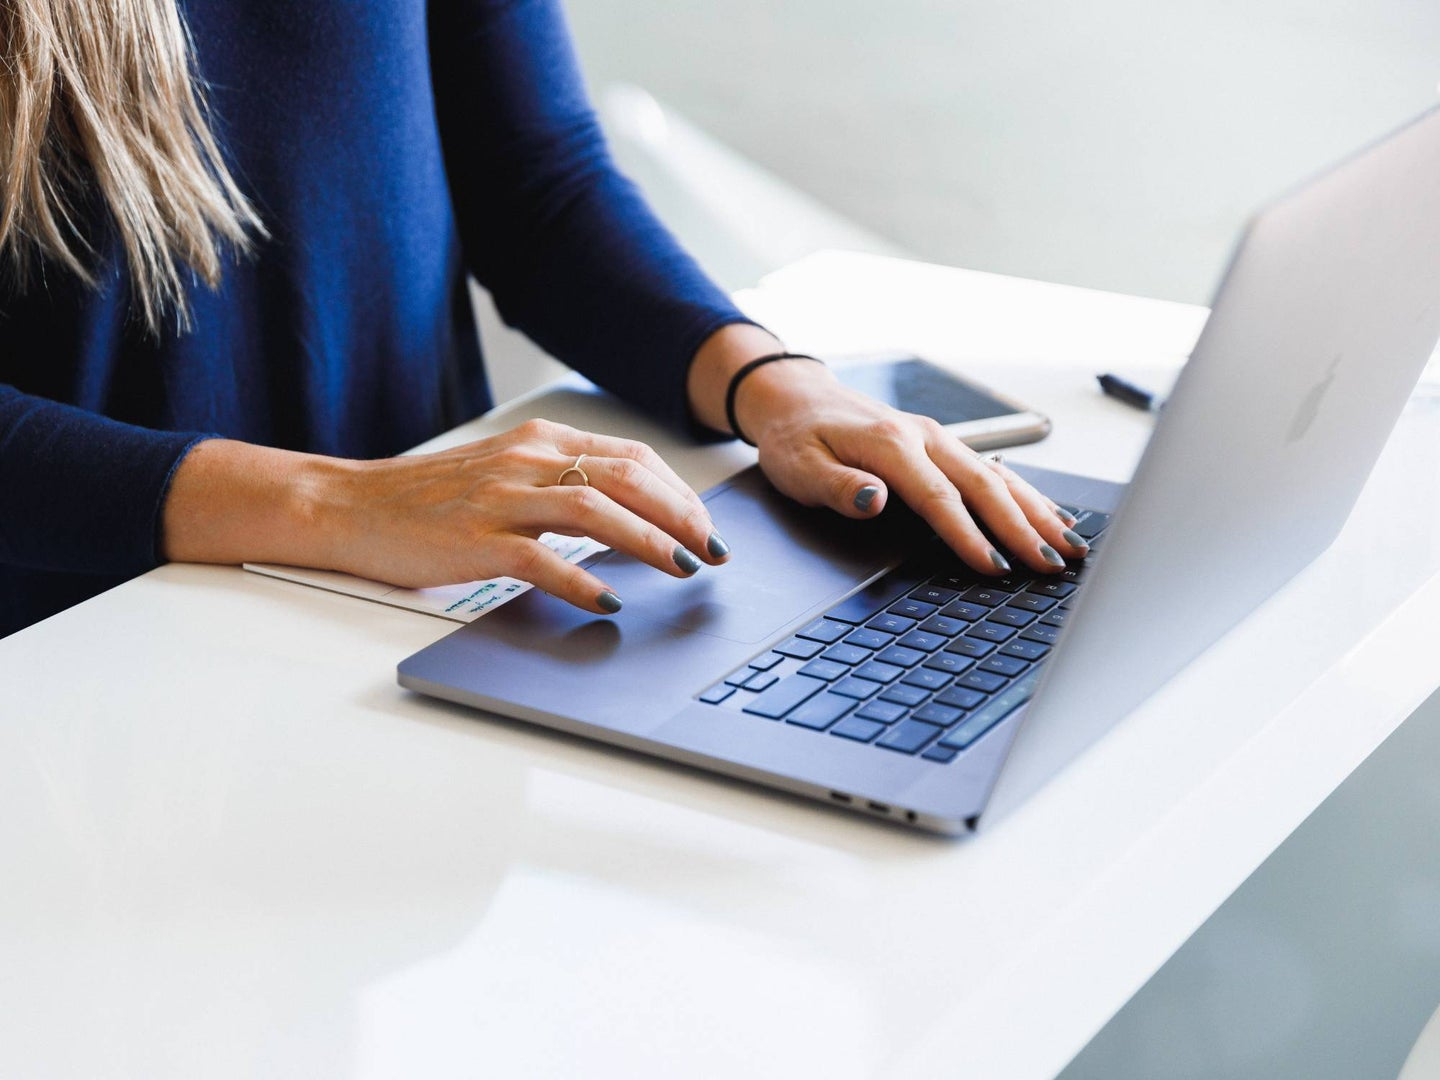 Person working on a laptop computer